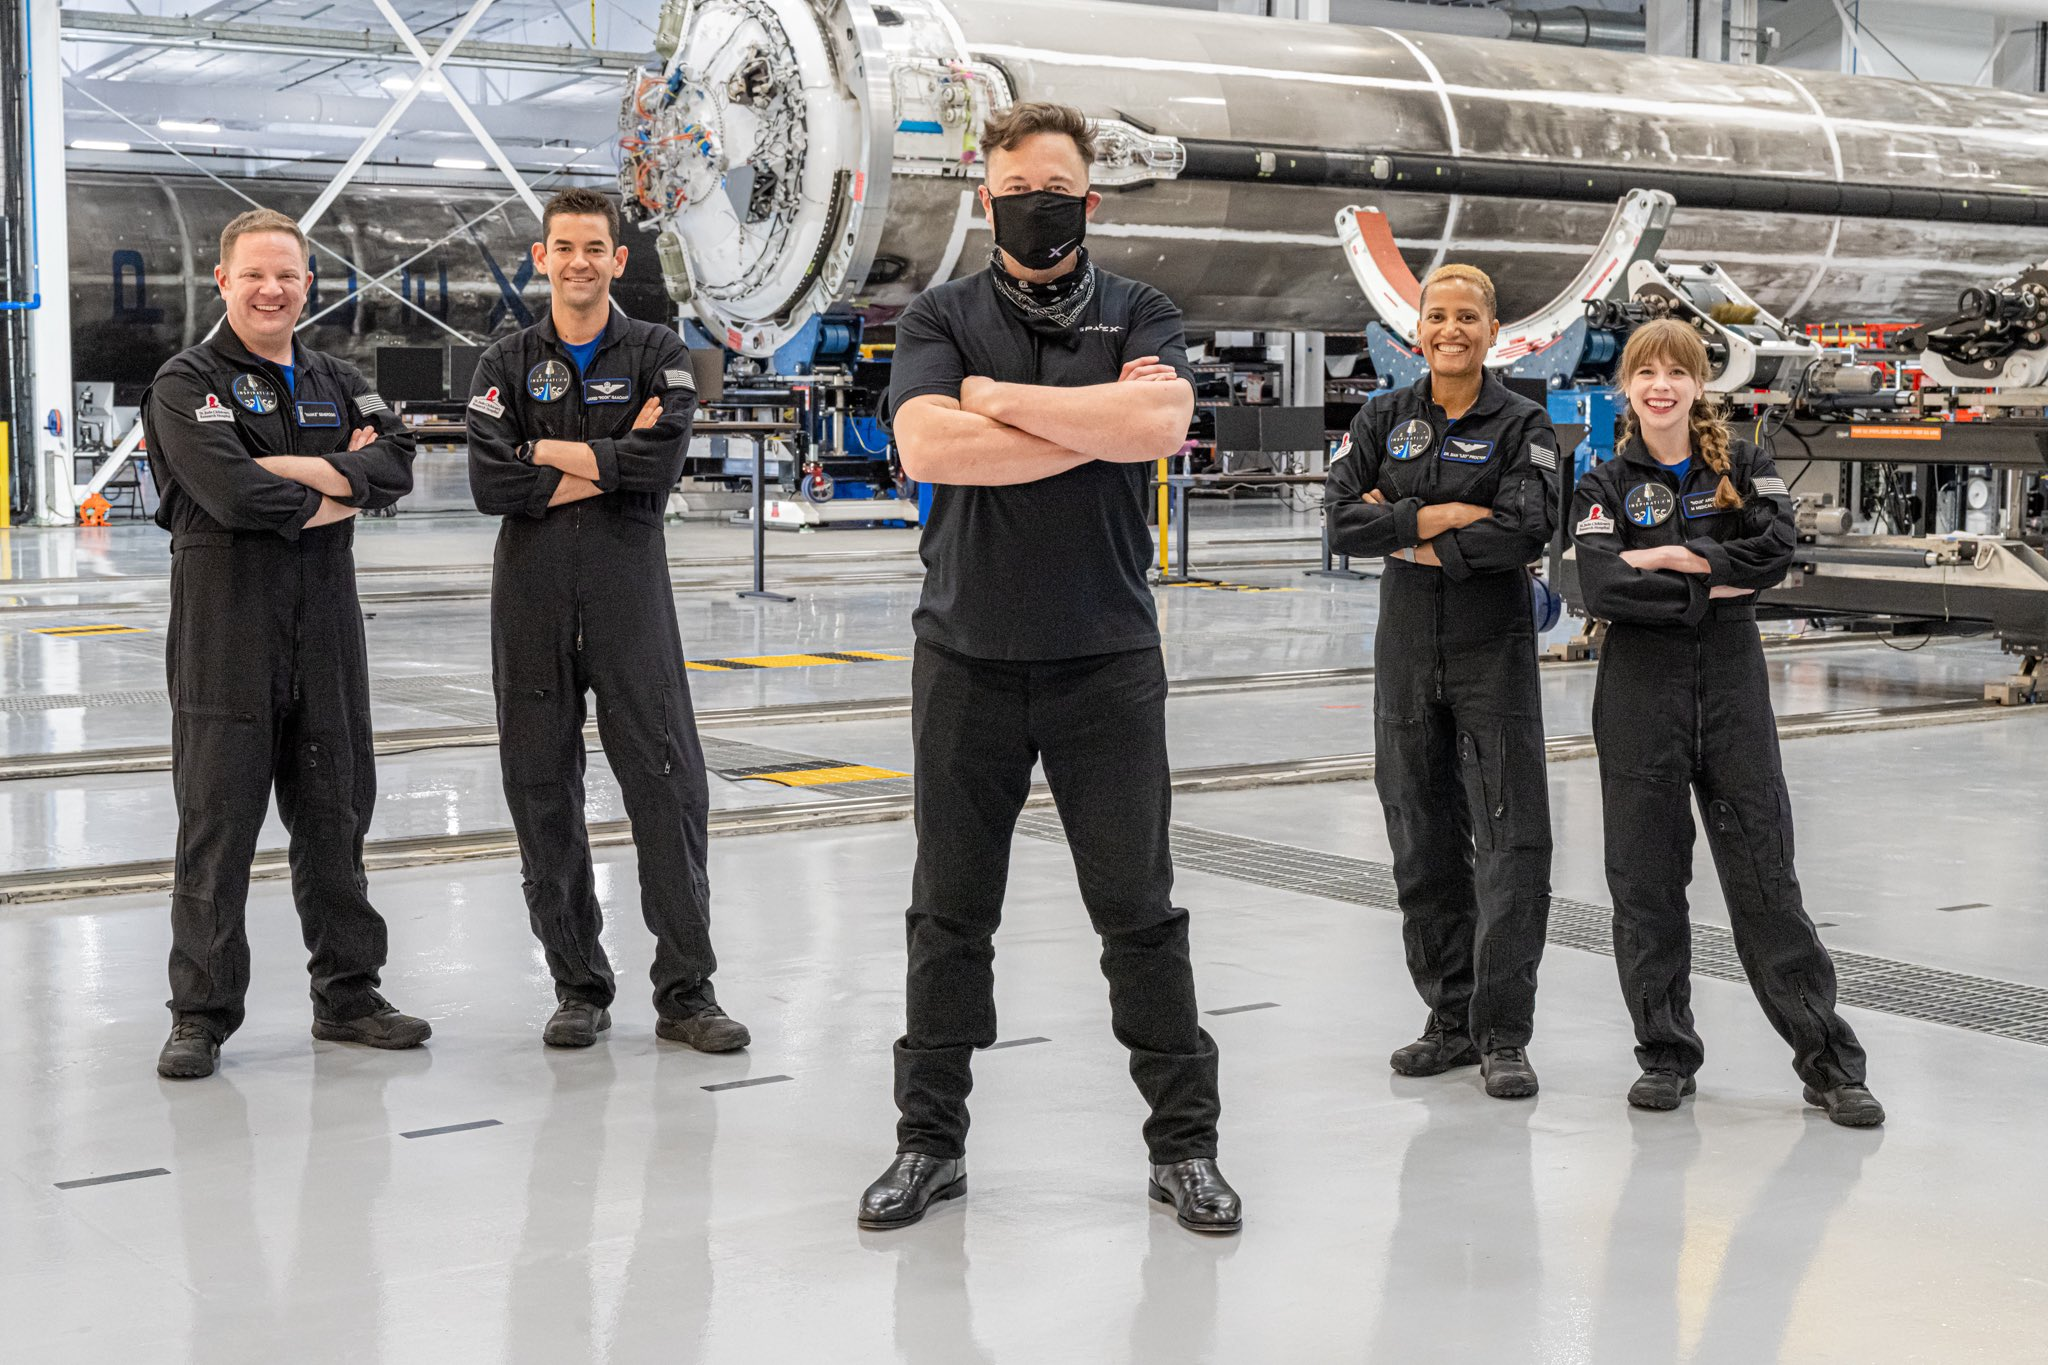 Inspiration20 crew, meet outer space SpaceX's first all civilian ...